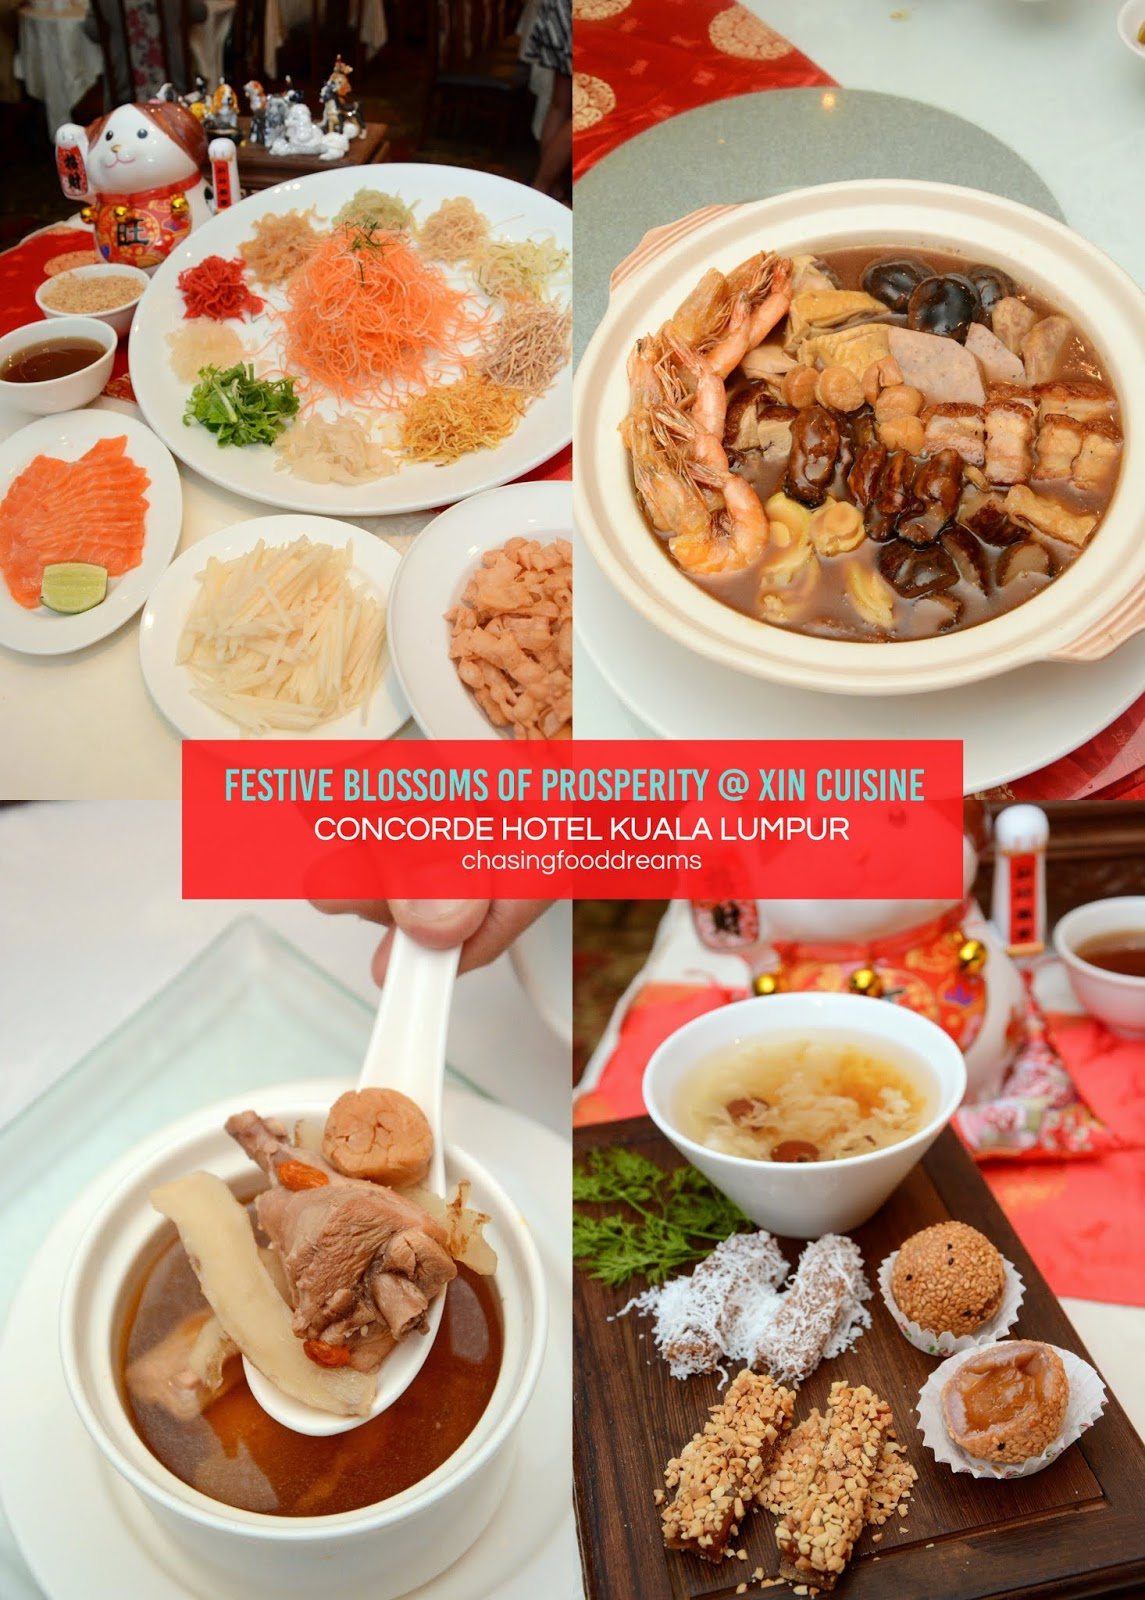 Chasing Food Dreams Cny 2018 Xin Cuisine Concorde Hotel Kuala Lumpur